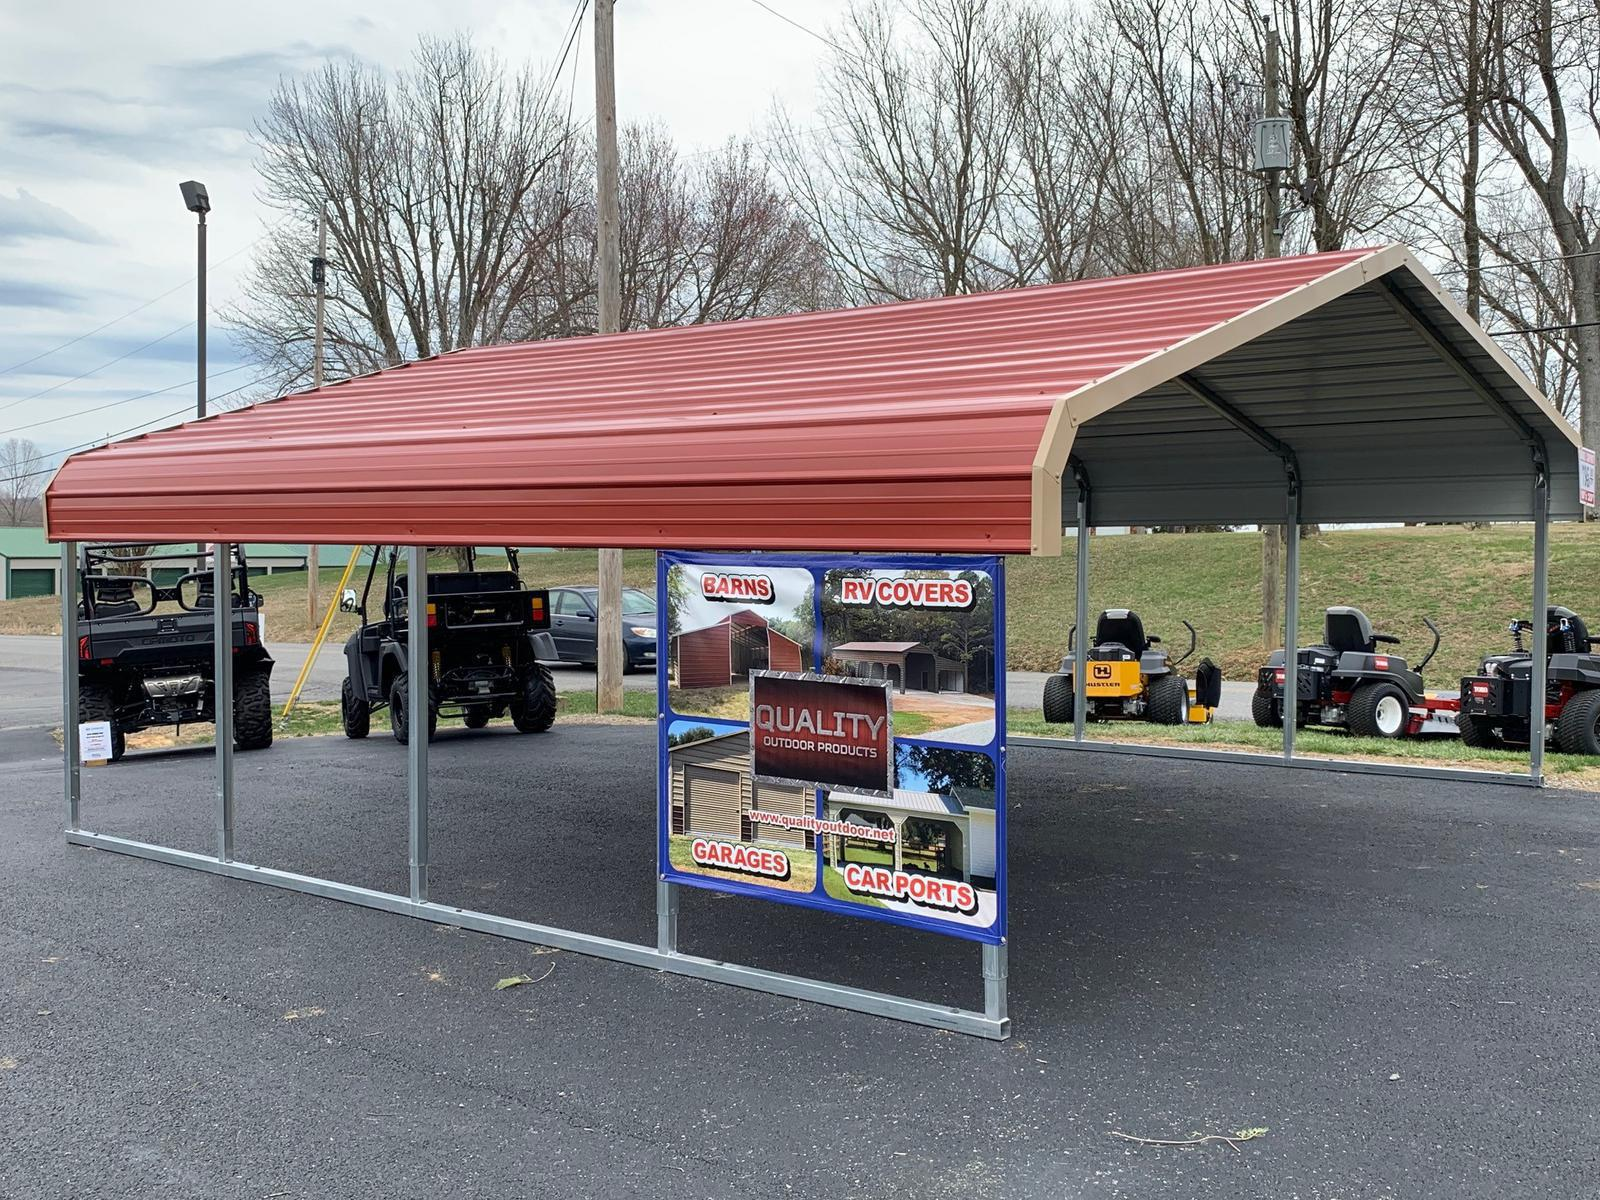 2019 Quality Outdoor Products Double Carport 18' X 20'